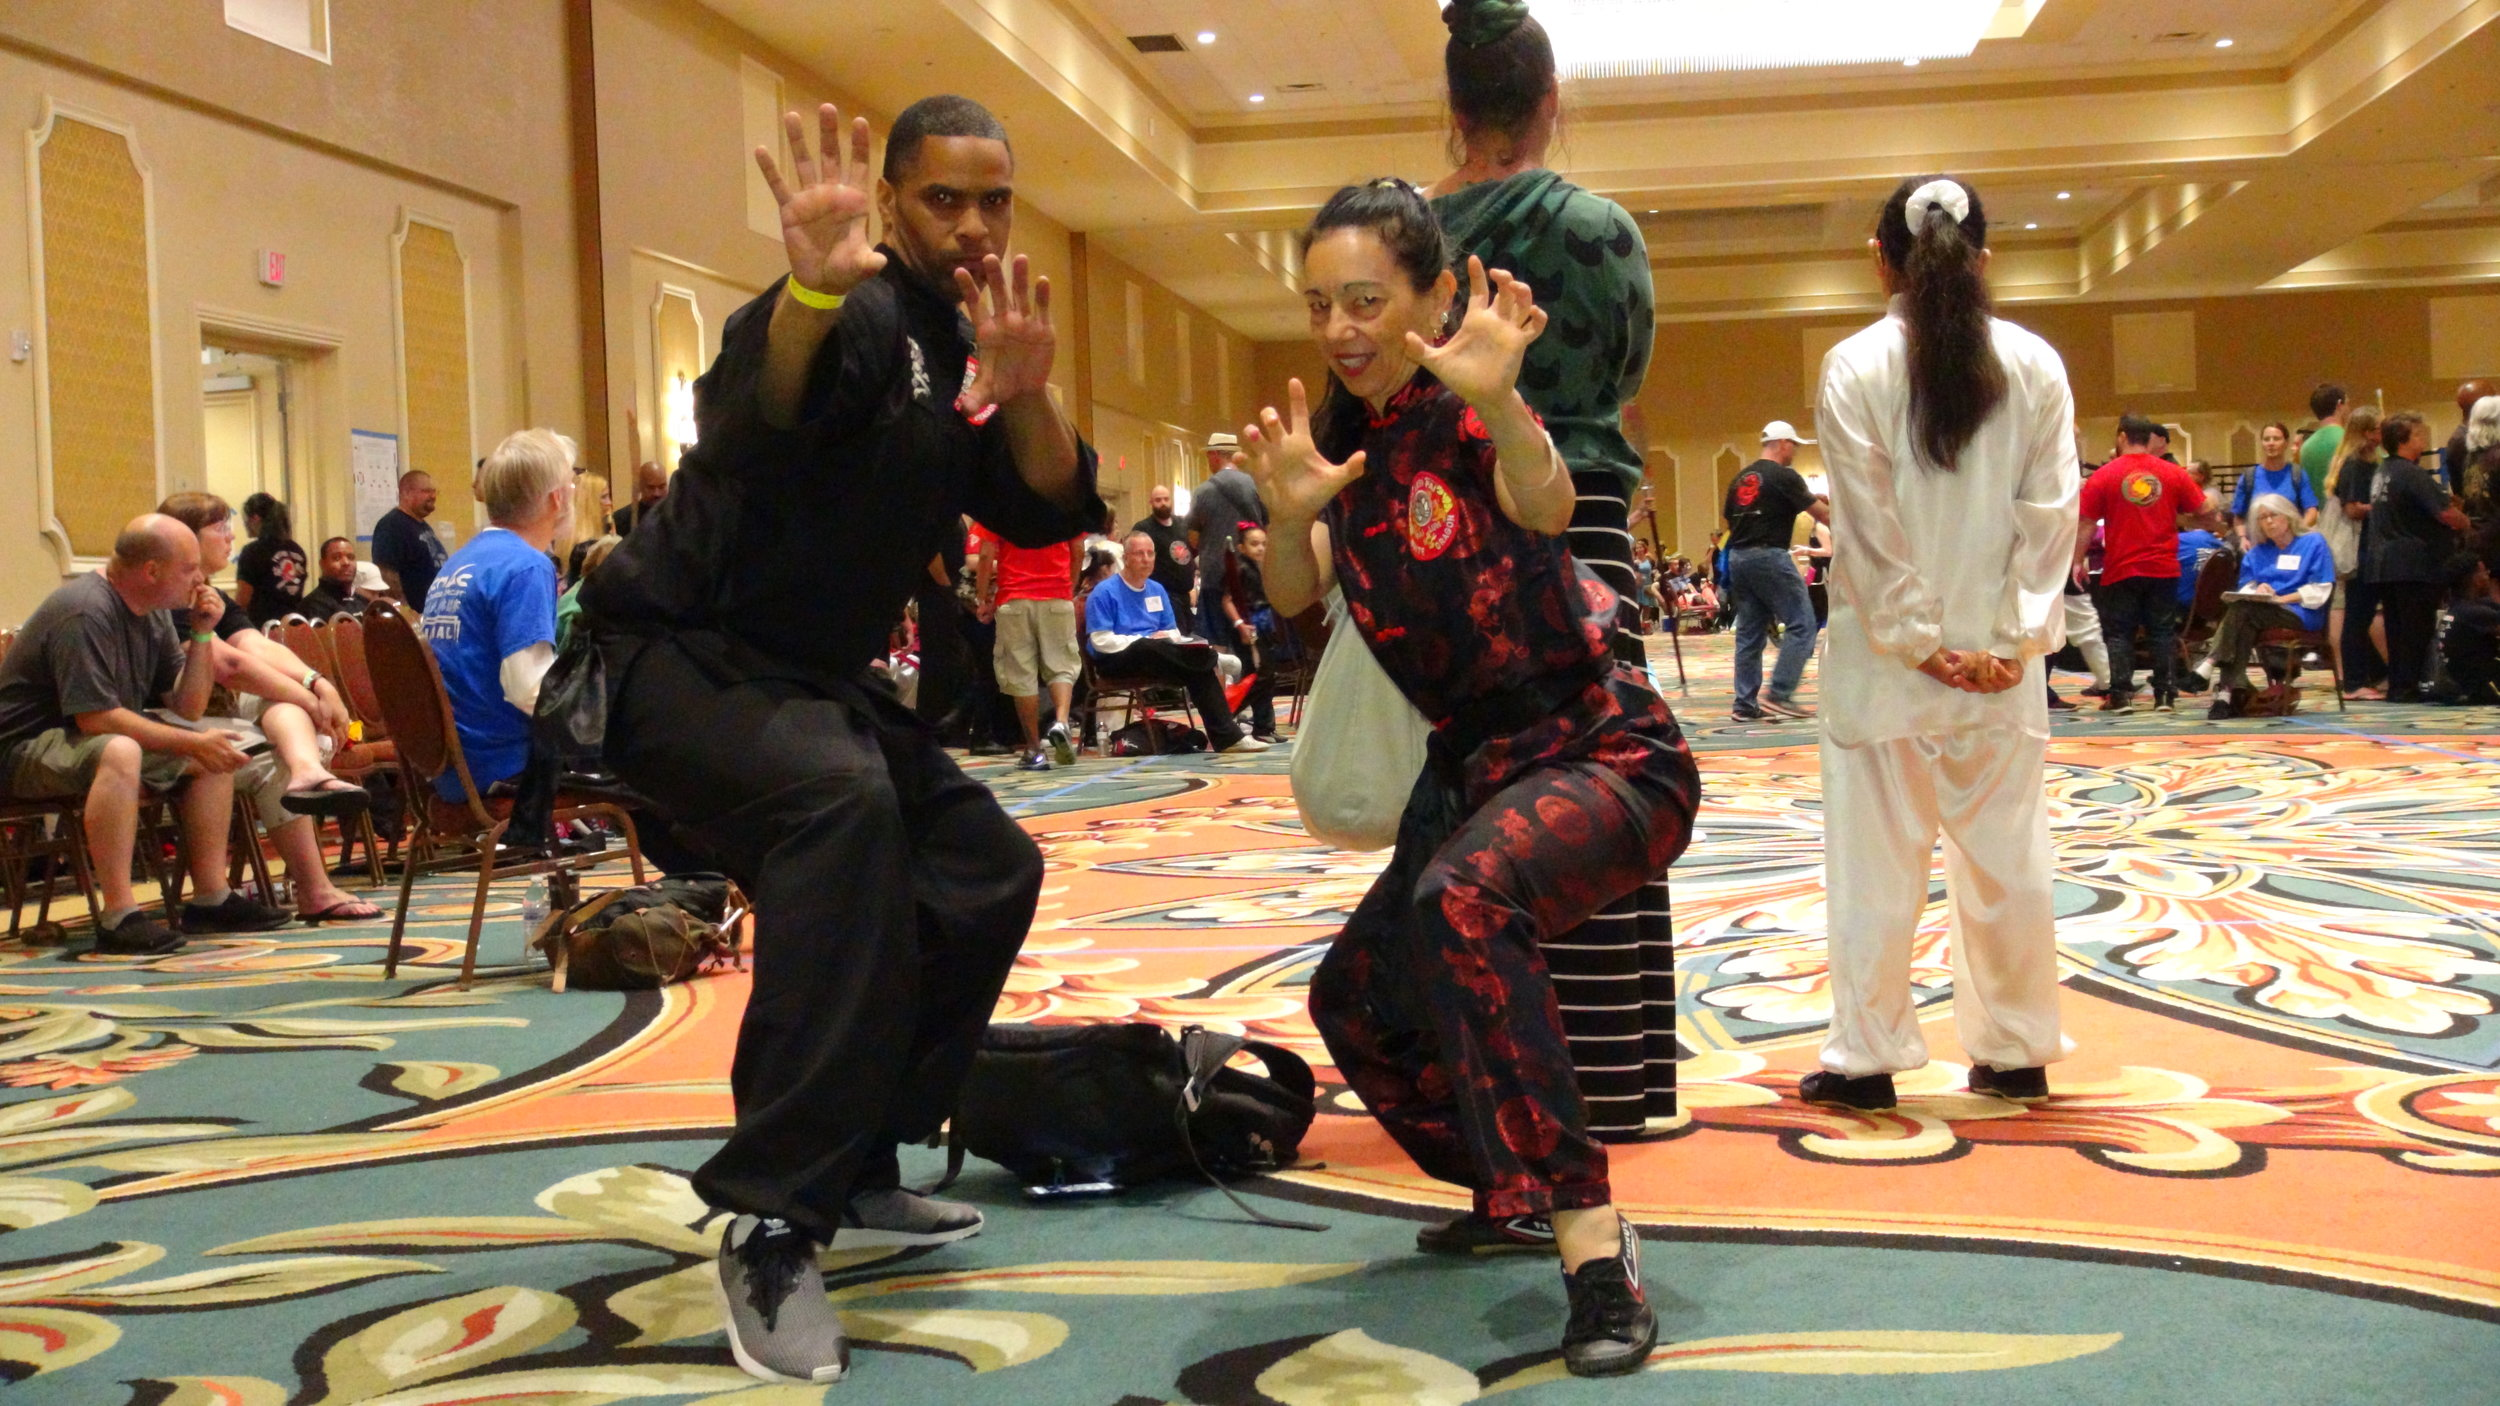 - THE JOY OF TEAMING UP WITH MY WHITE DRAGON FIST PAI LUM NORTHEAST DRAGONS COLLEAUGE